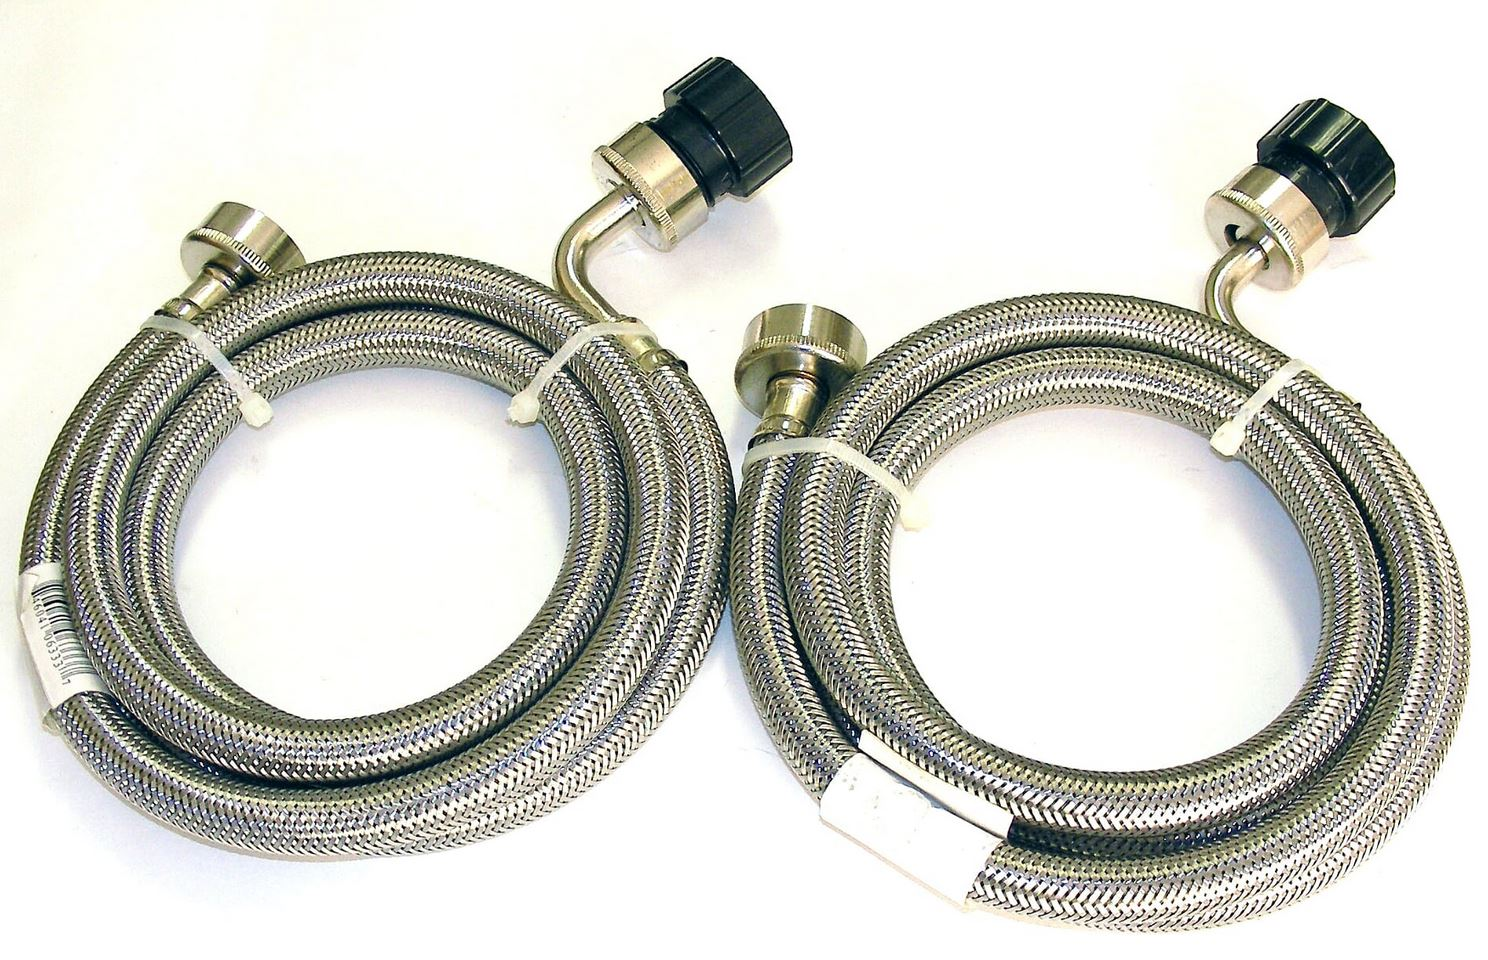 18-2826 Pinnacle Appliances Clothes Washer/ Dryer Inlet Hose